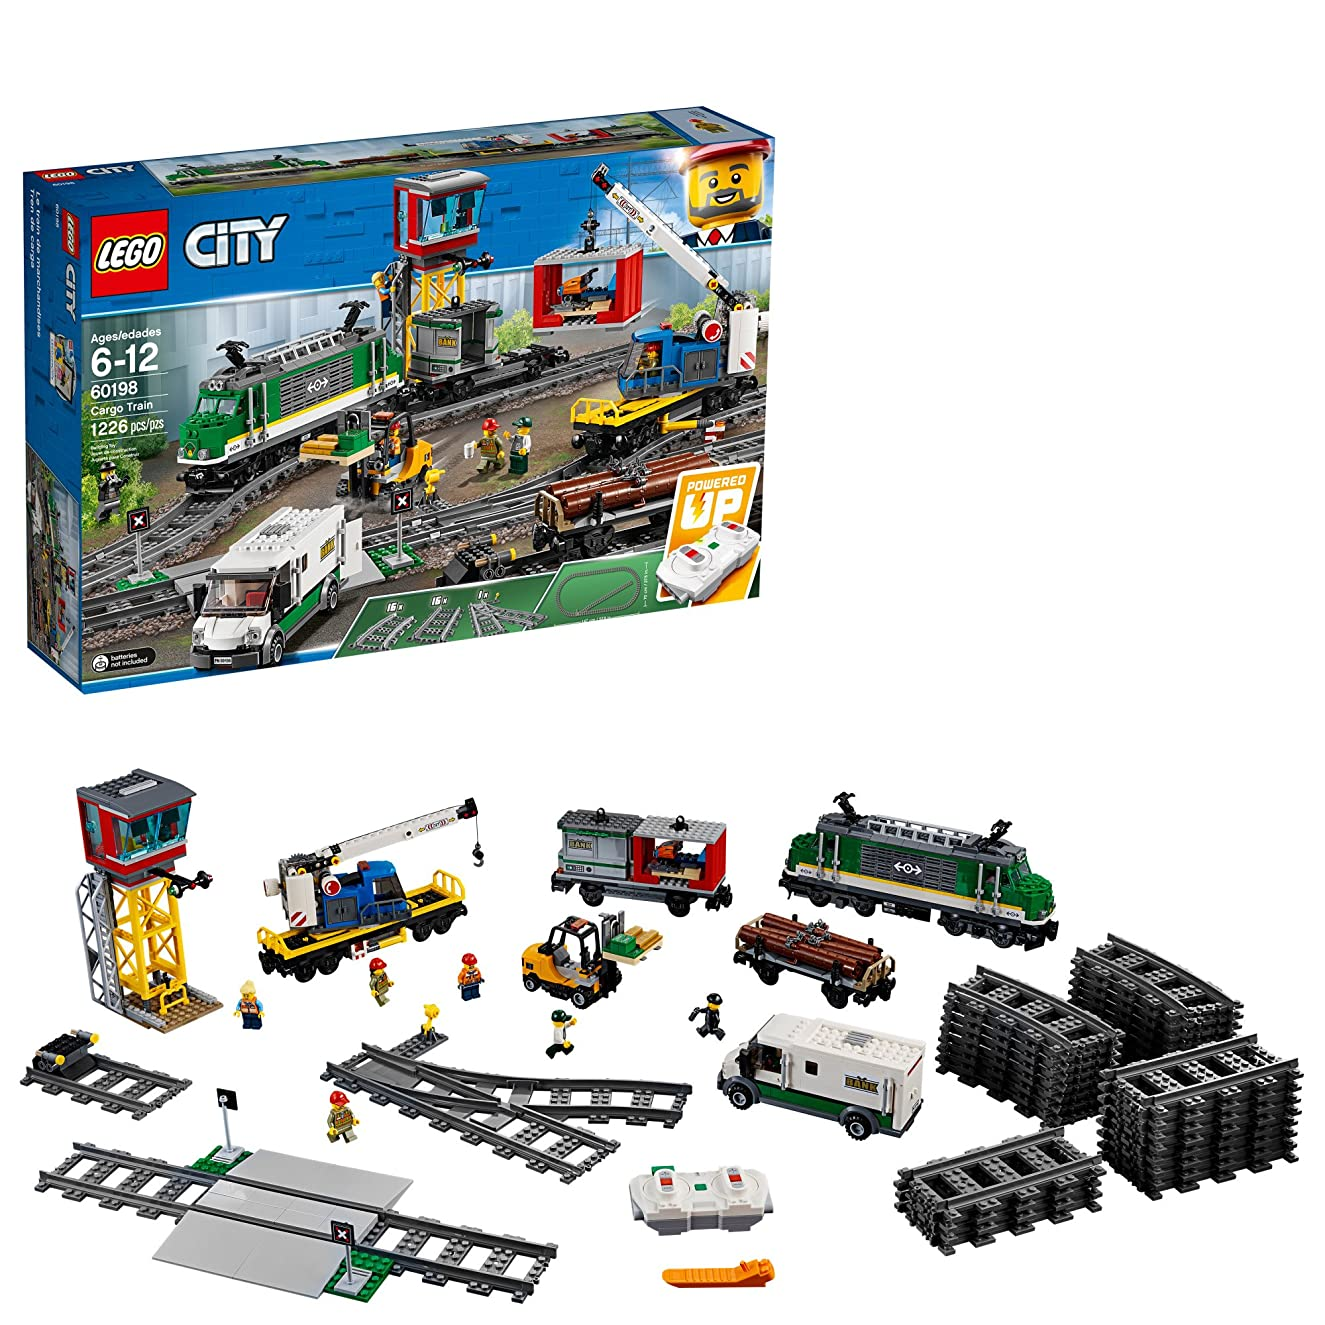 LEGO City Cargo Train 60198 Remote Control Train Building Set with Tracks for Kids, Top Present for Boys and Girls (1226 Pieces)